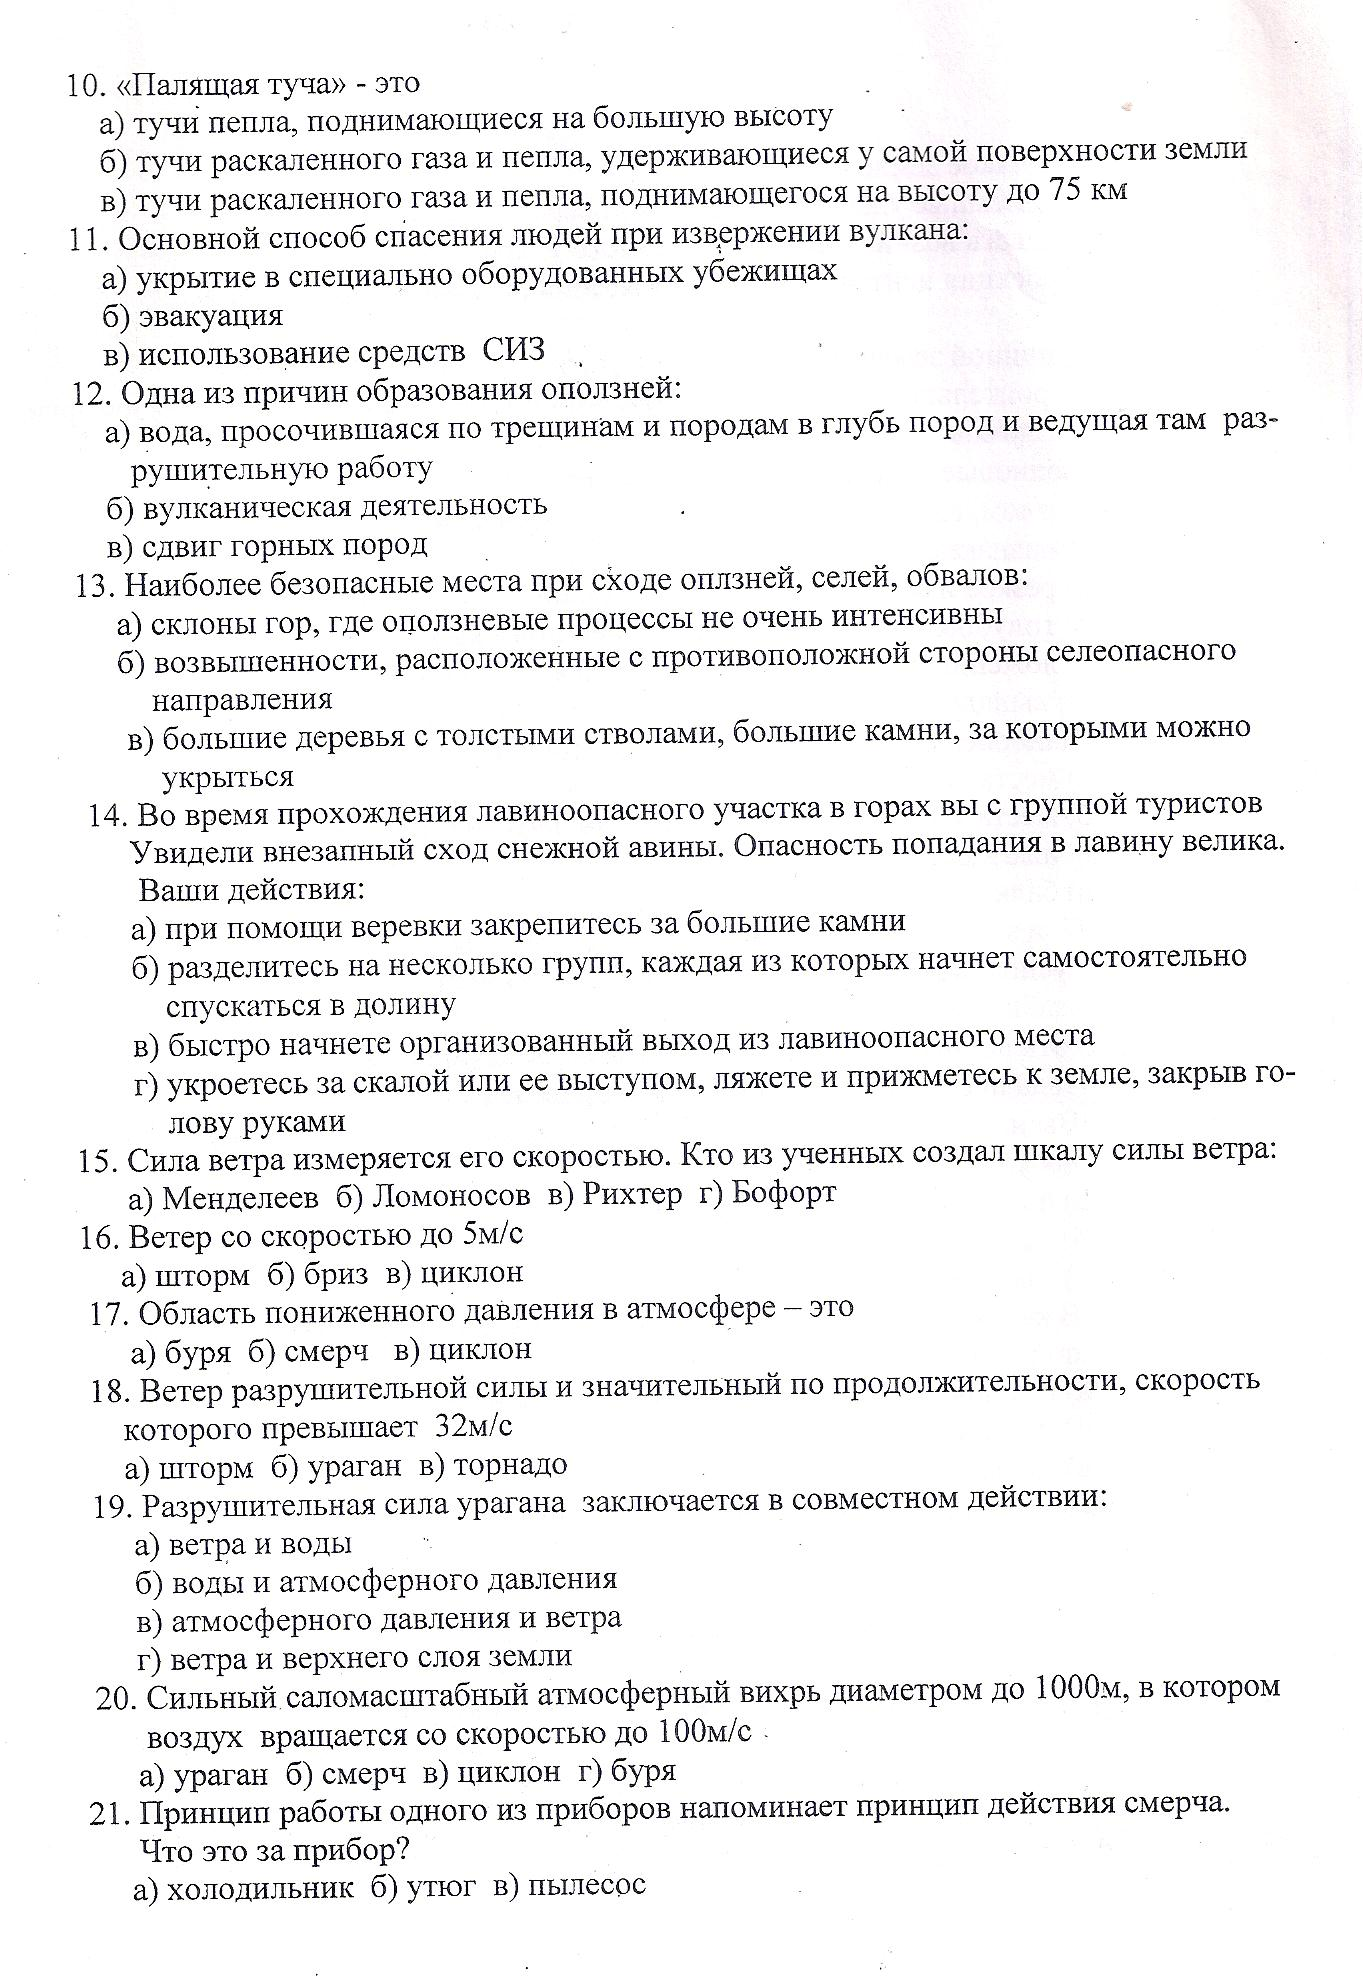 C:\Users\Наталья\Pictures\2015-05-12\004.jpg